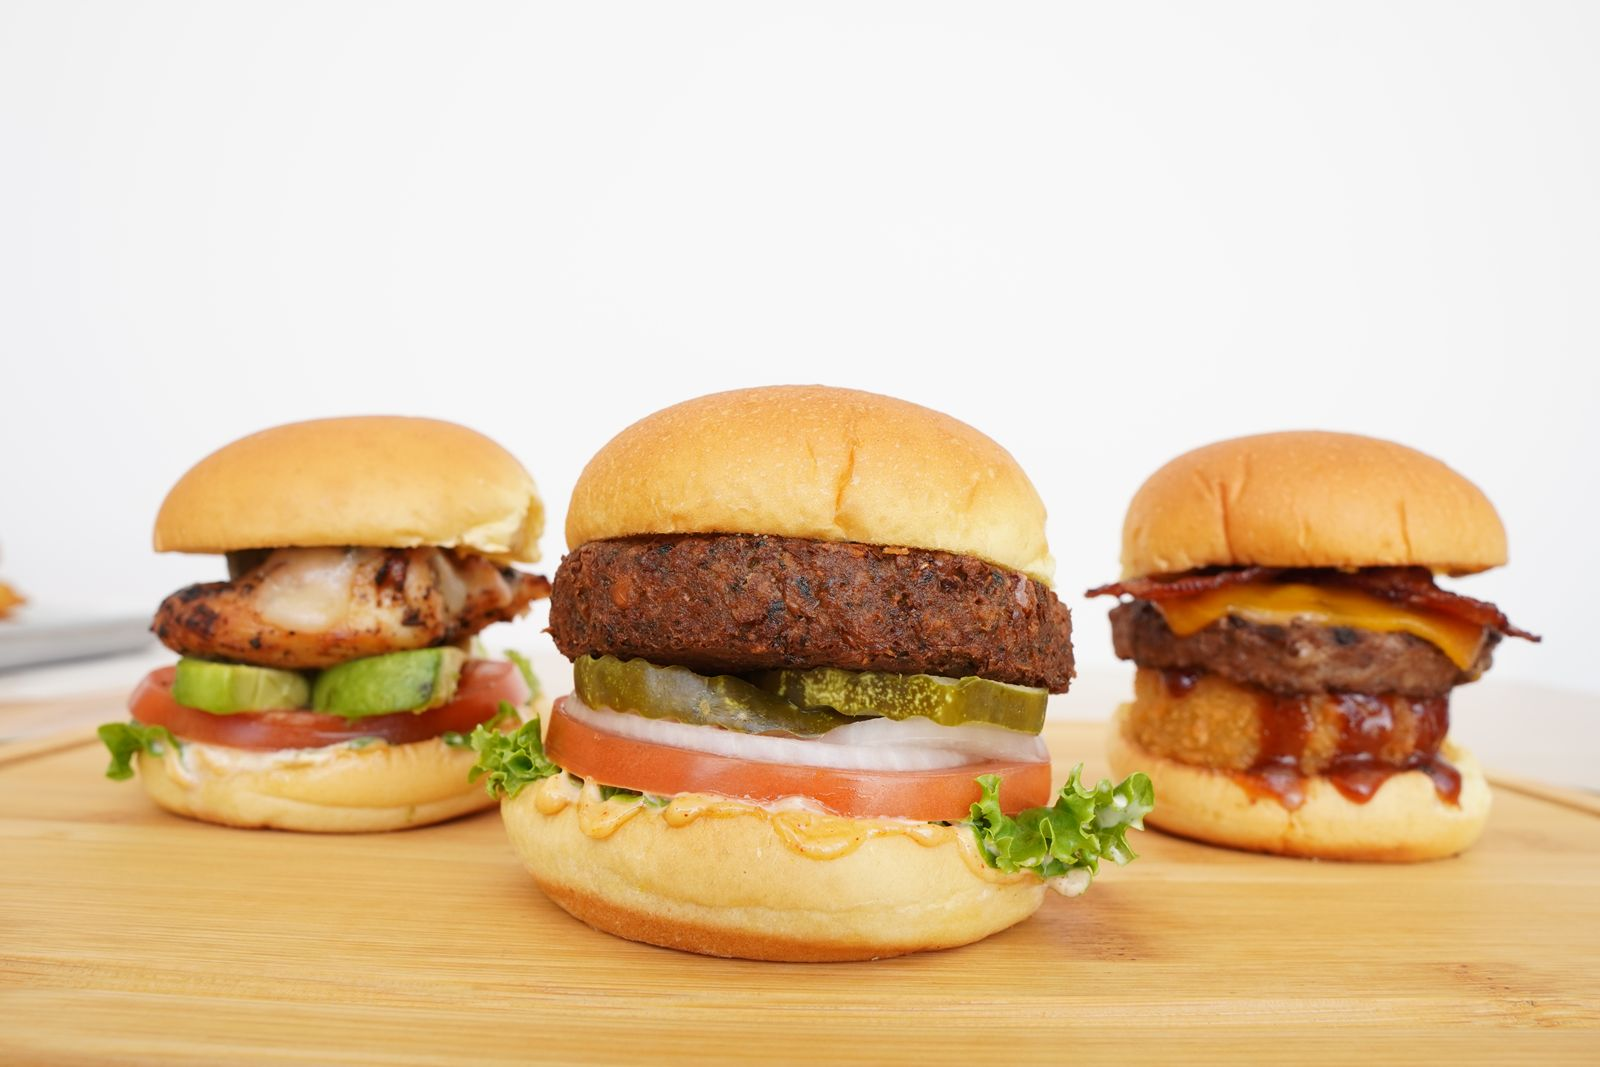 iniBurger, the Bay Area's Gourmet Burger Destination, to Celebrate One Year Anniversary With Free Sliders and Ribbon-Cutting Ceremony